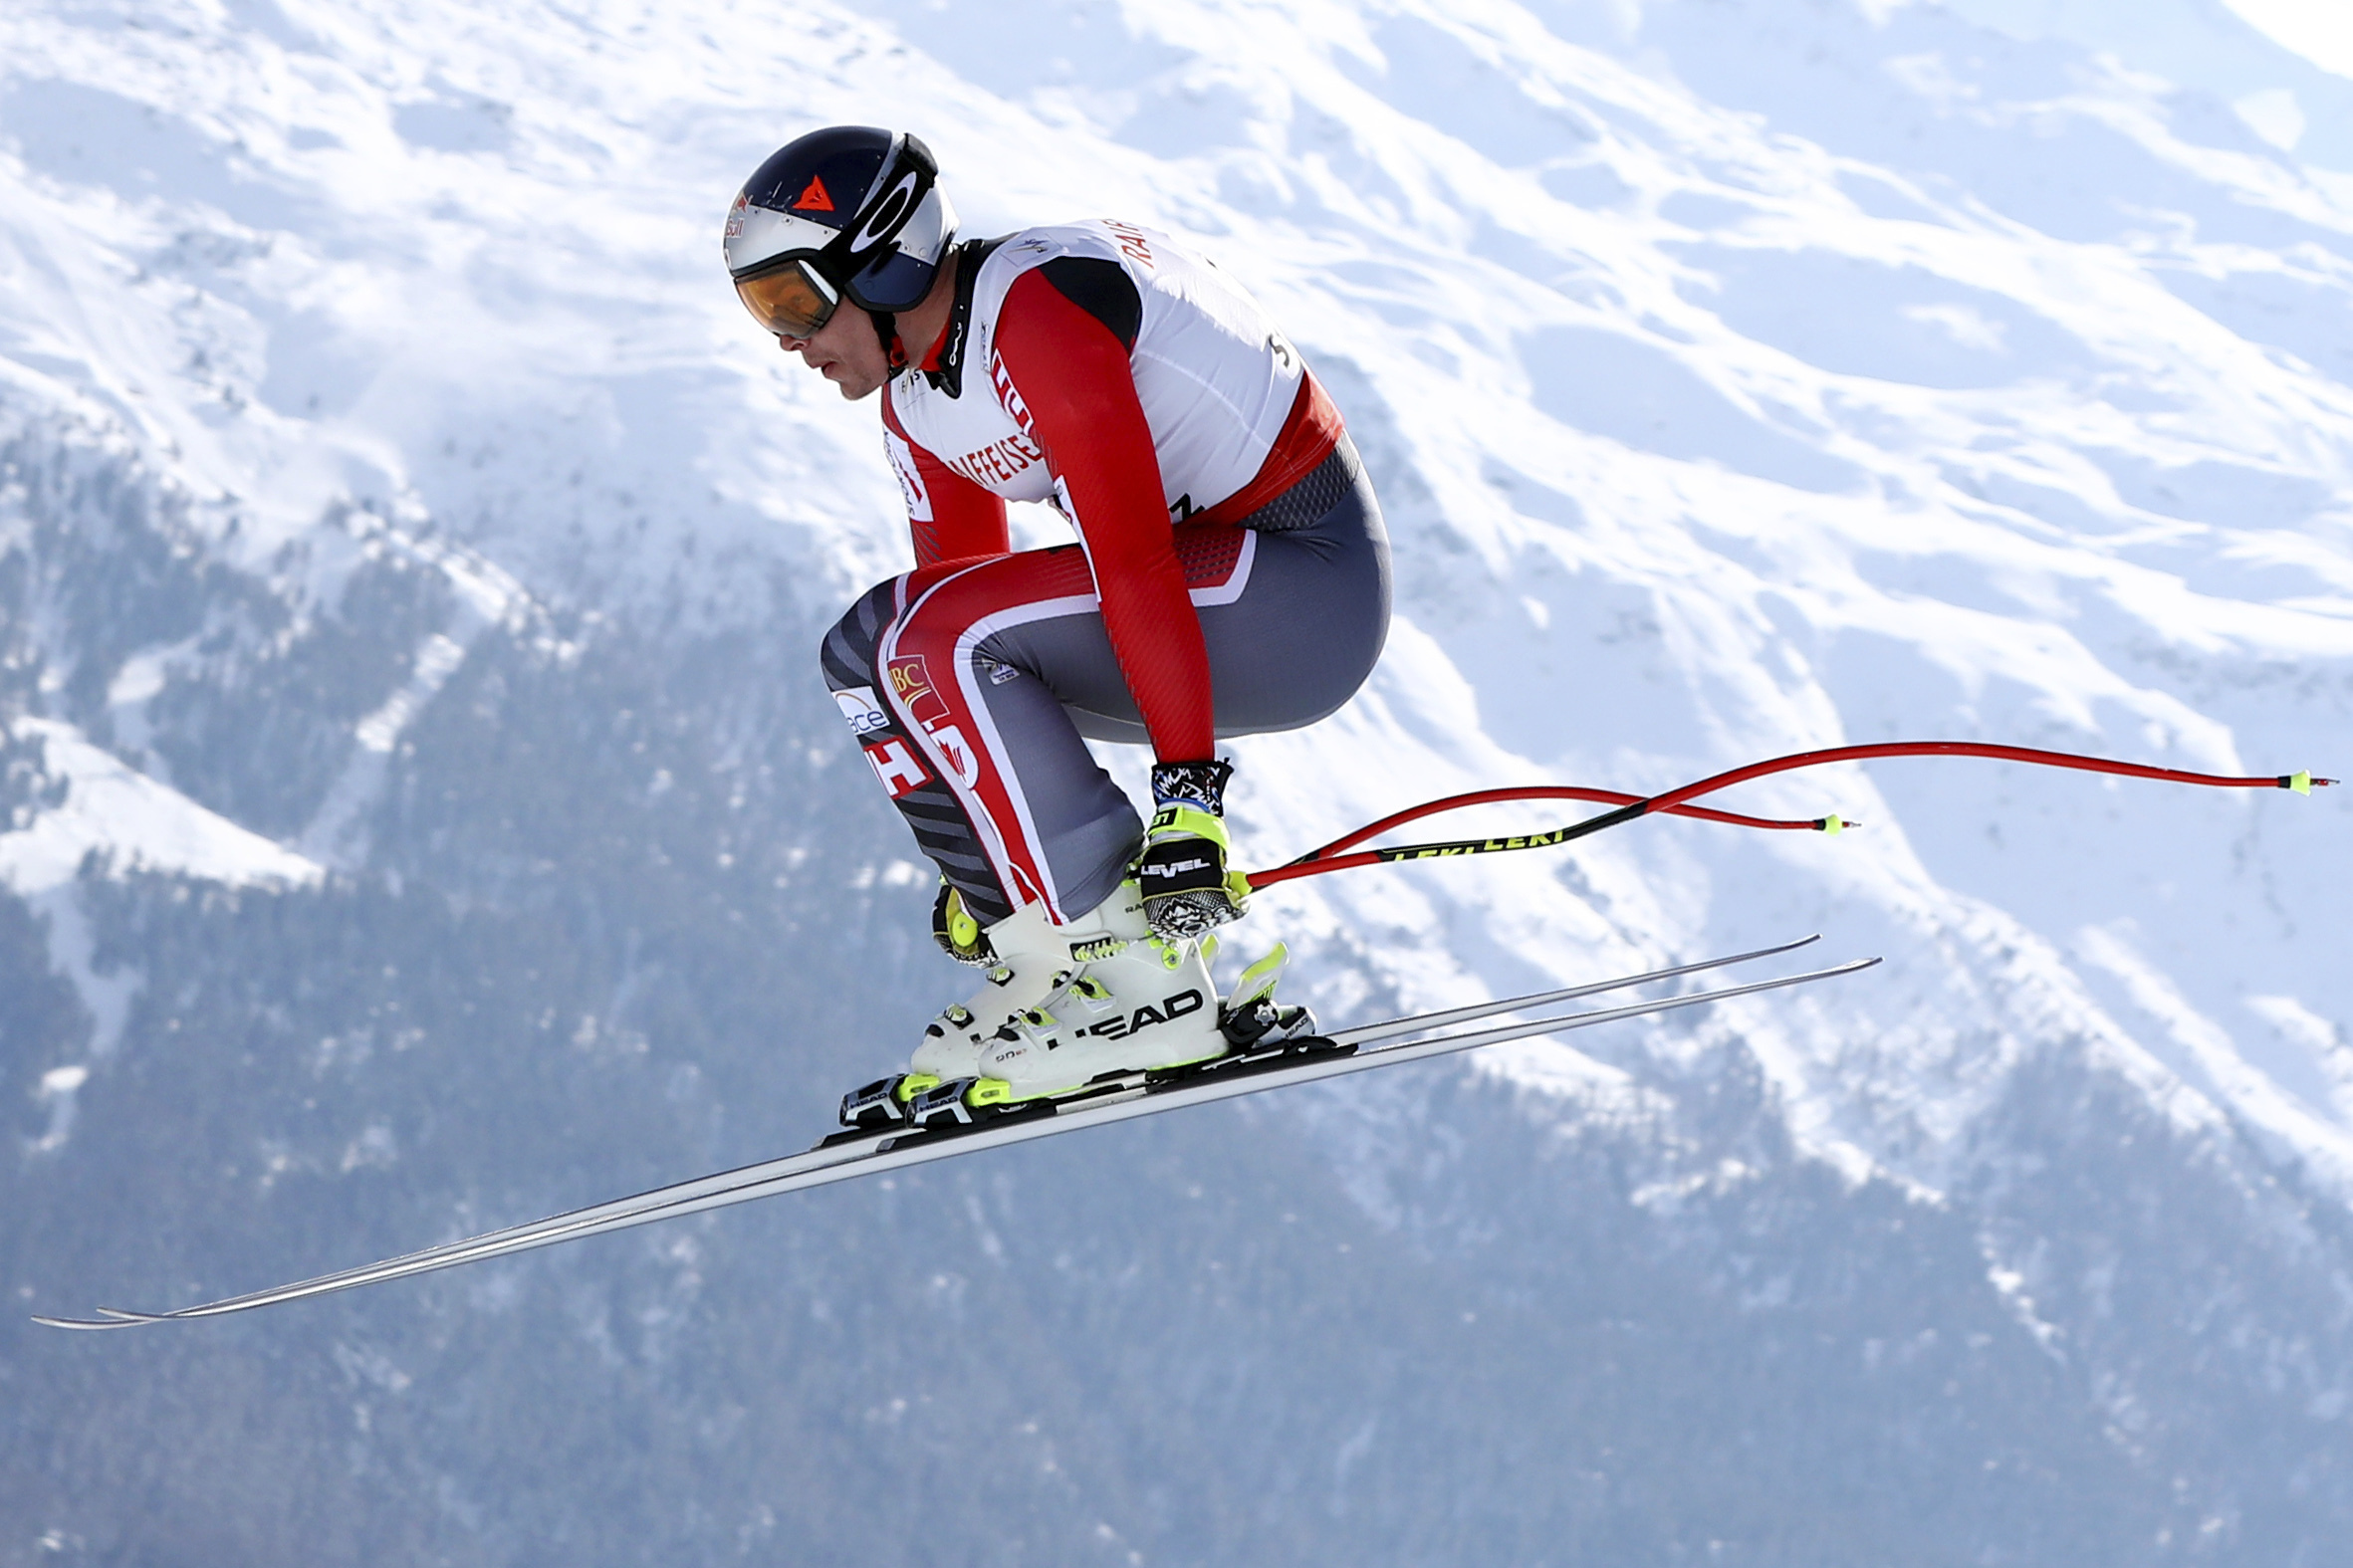 Canada's Erik Guay competes during a men's downhill race, at the alpine ski World Championships in St. Moritz, Switzerland, Sunday, Feb.12, 2017. (AP Photo/Alessandro Trovati)